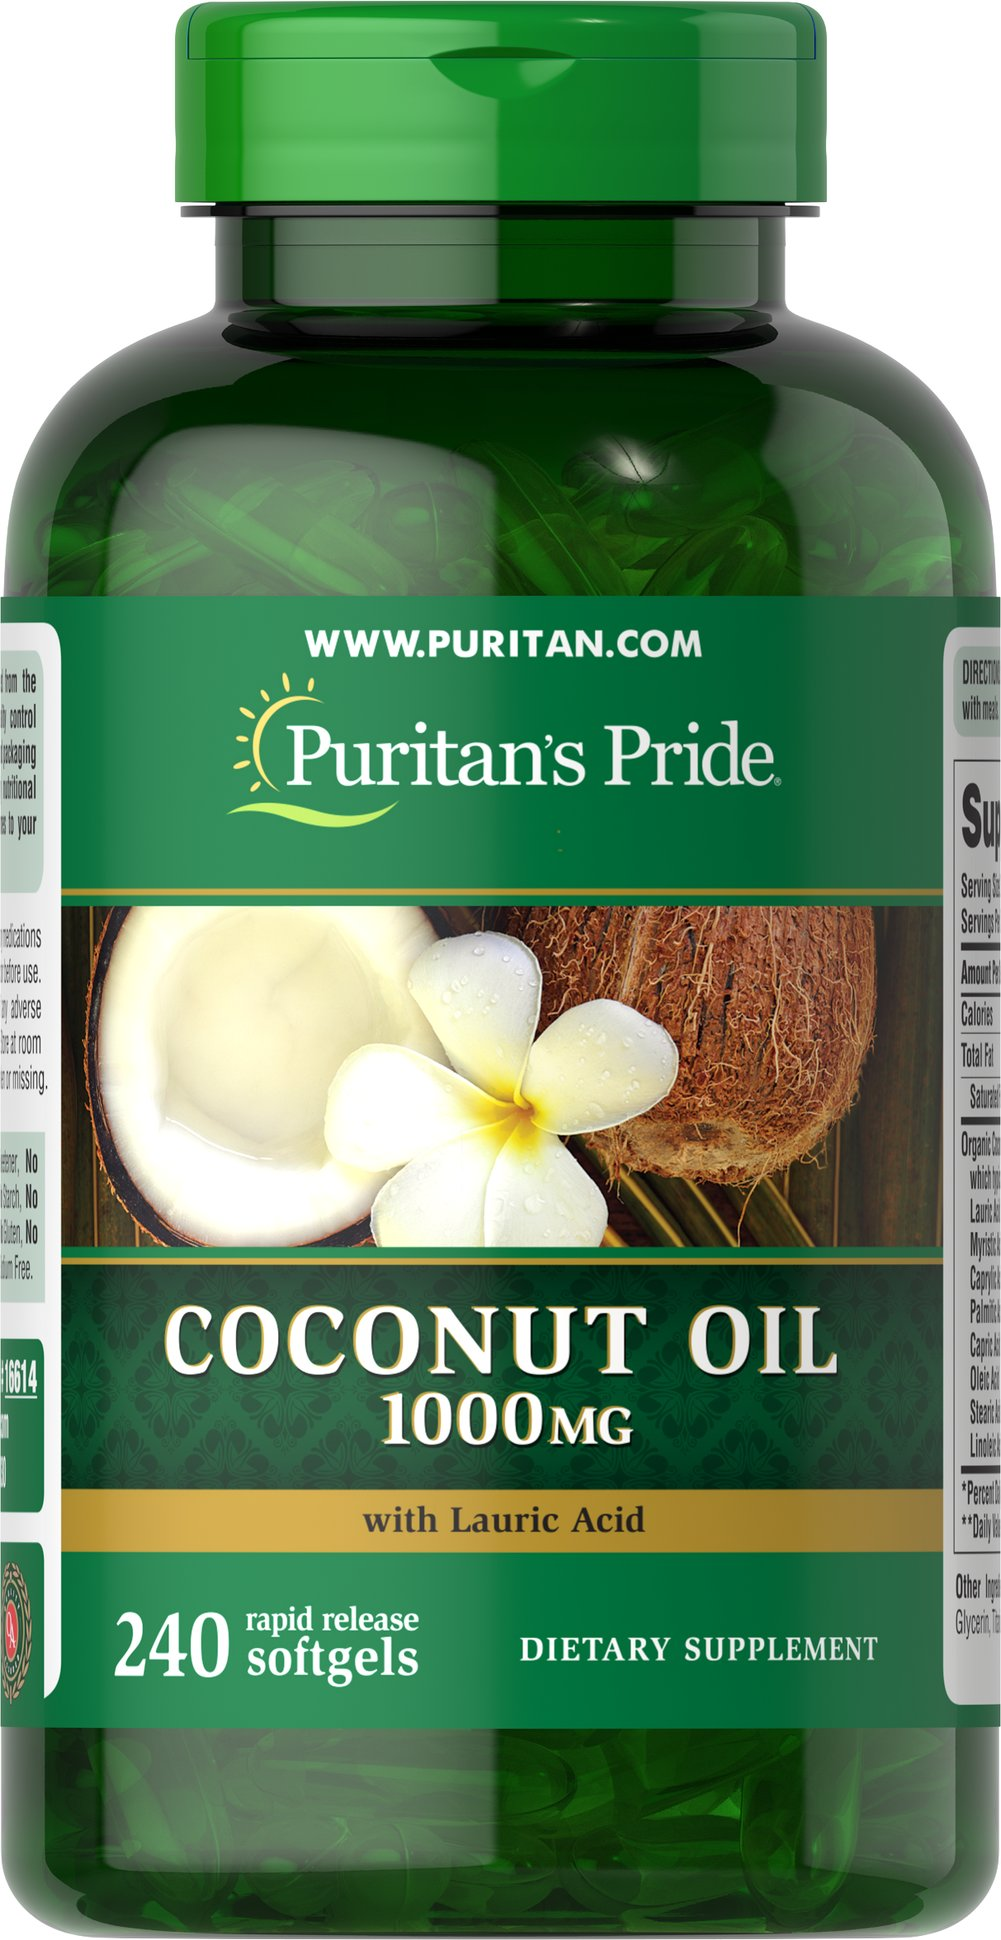 Coconut Oil 1000 mg  240 Rapid Release Softgels 1000 mg $32.29